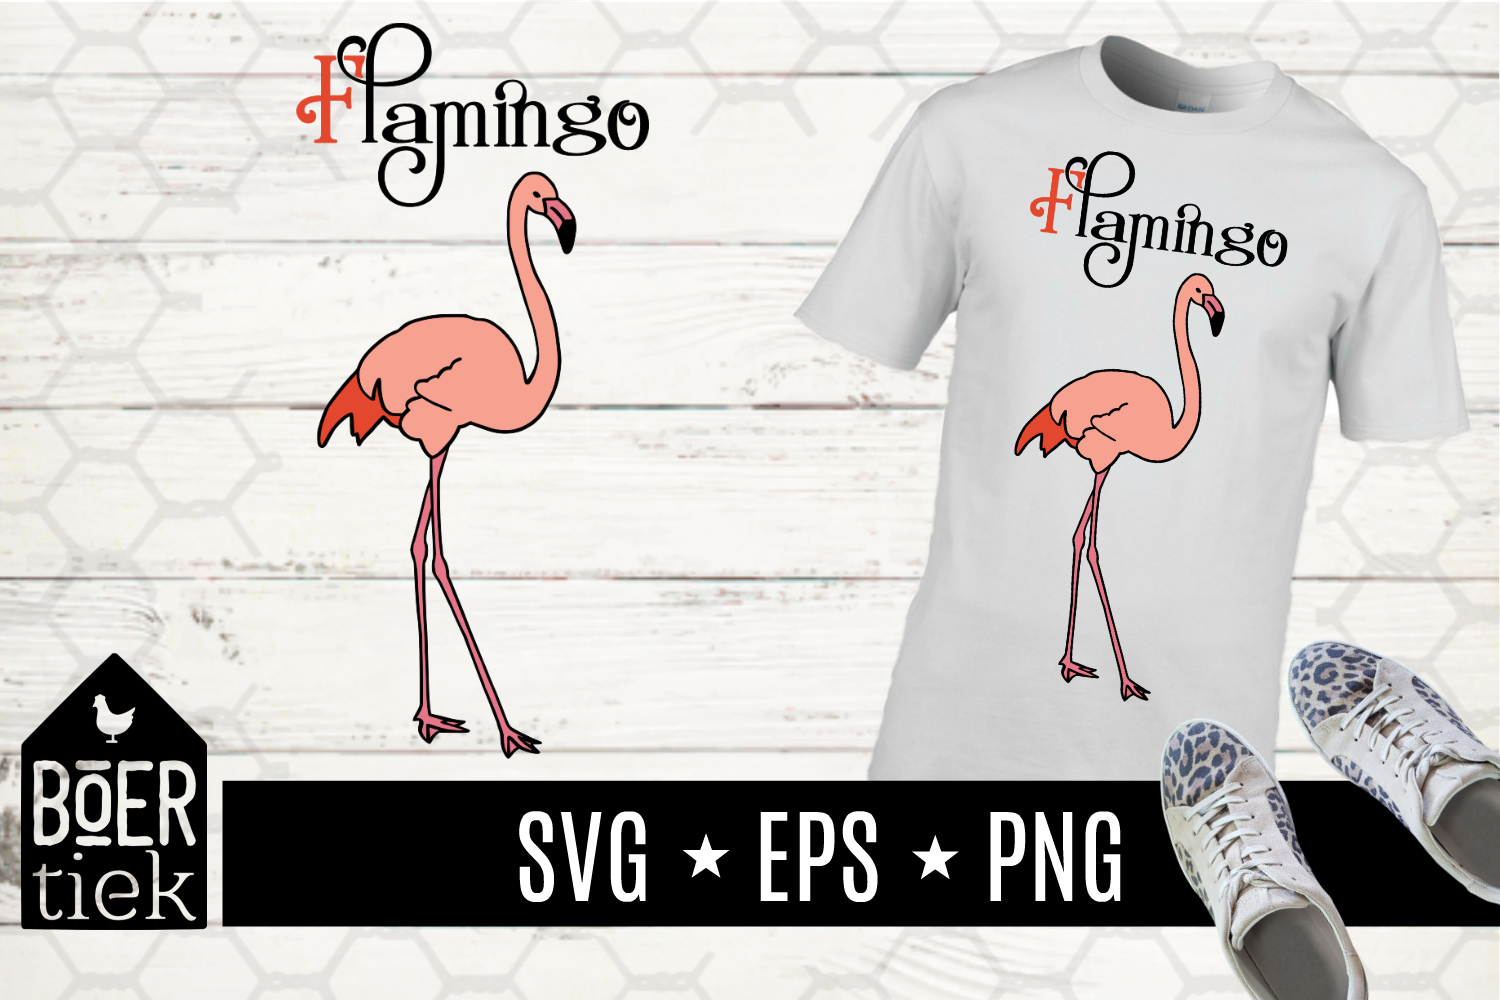 Download Free Flamingo Graphic By Boertiek Creative Fabrica for Cricut Explore, Silhouette and other cutting machines.